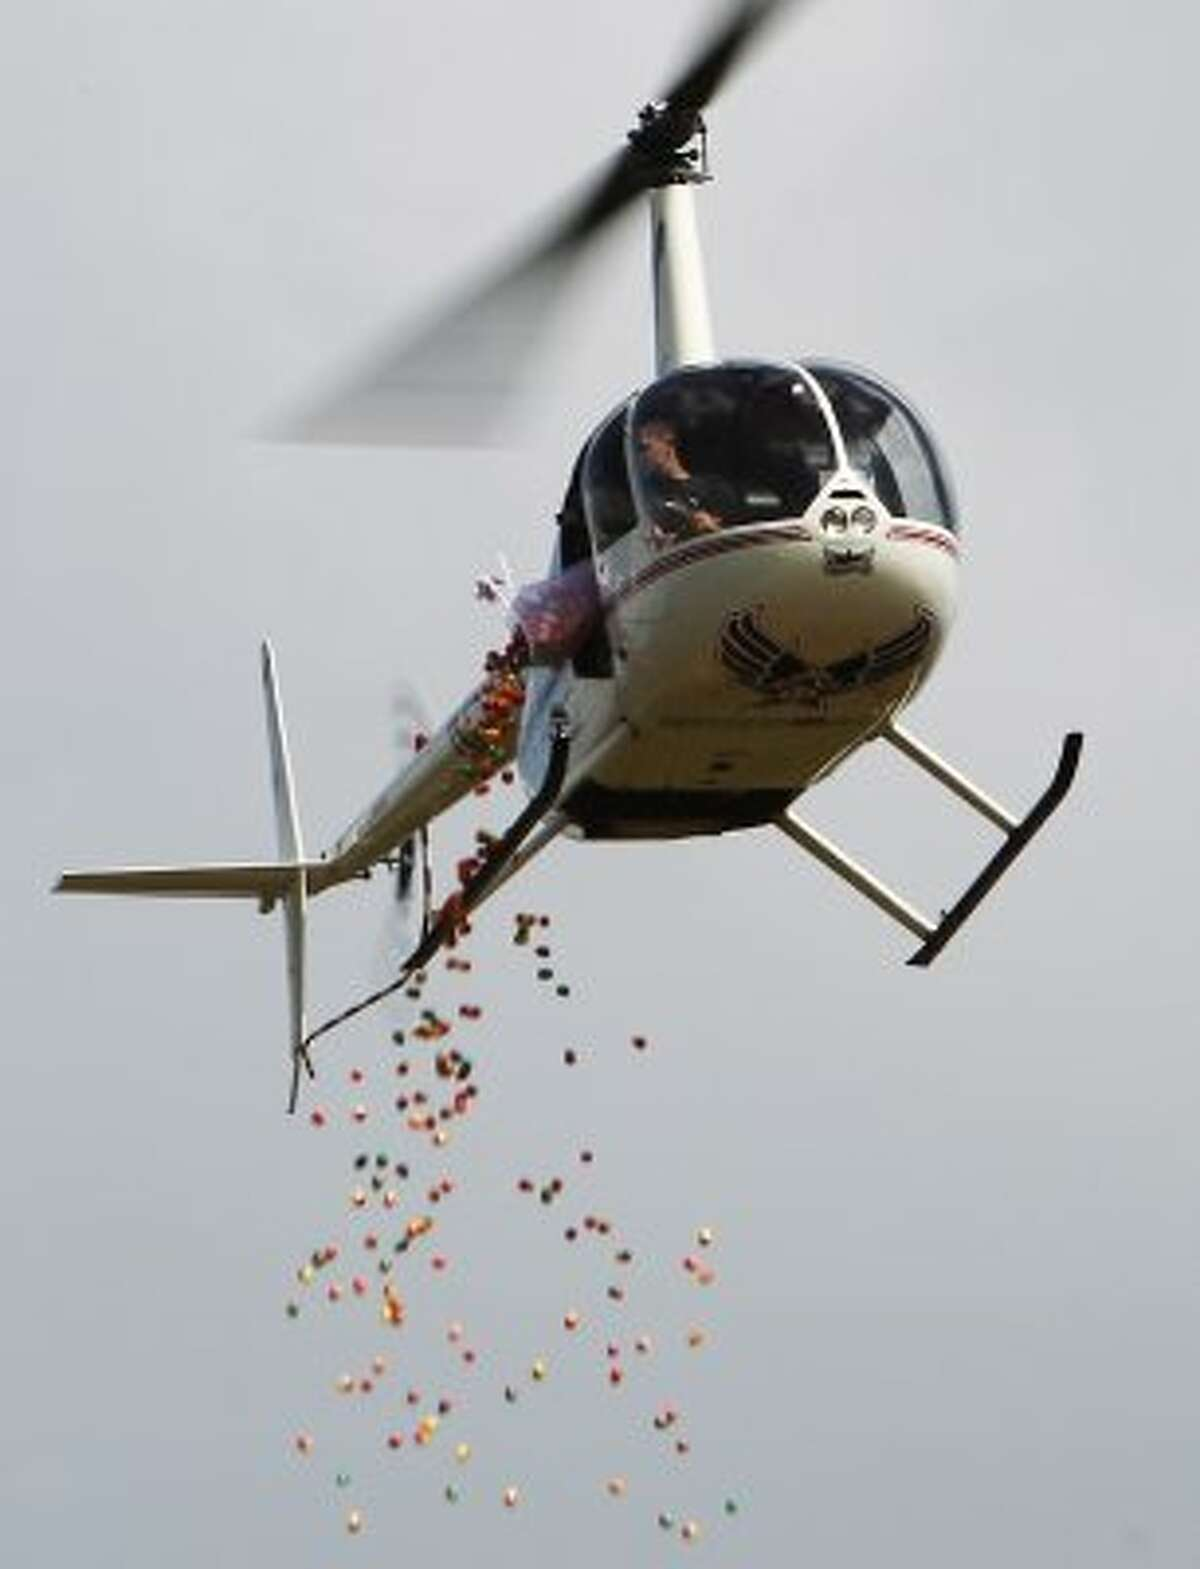 Helicopter pilot Heath Voss steadies his aircraft as plastic eggs are dropped onto a field as West U - the west campus of University United Methodist Church. (Kin Man Hui / San Antonio Express-News)